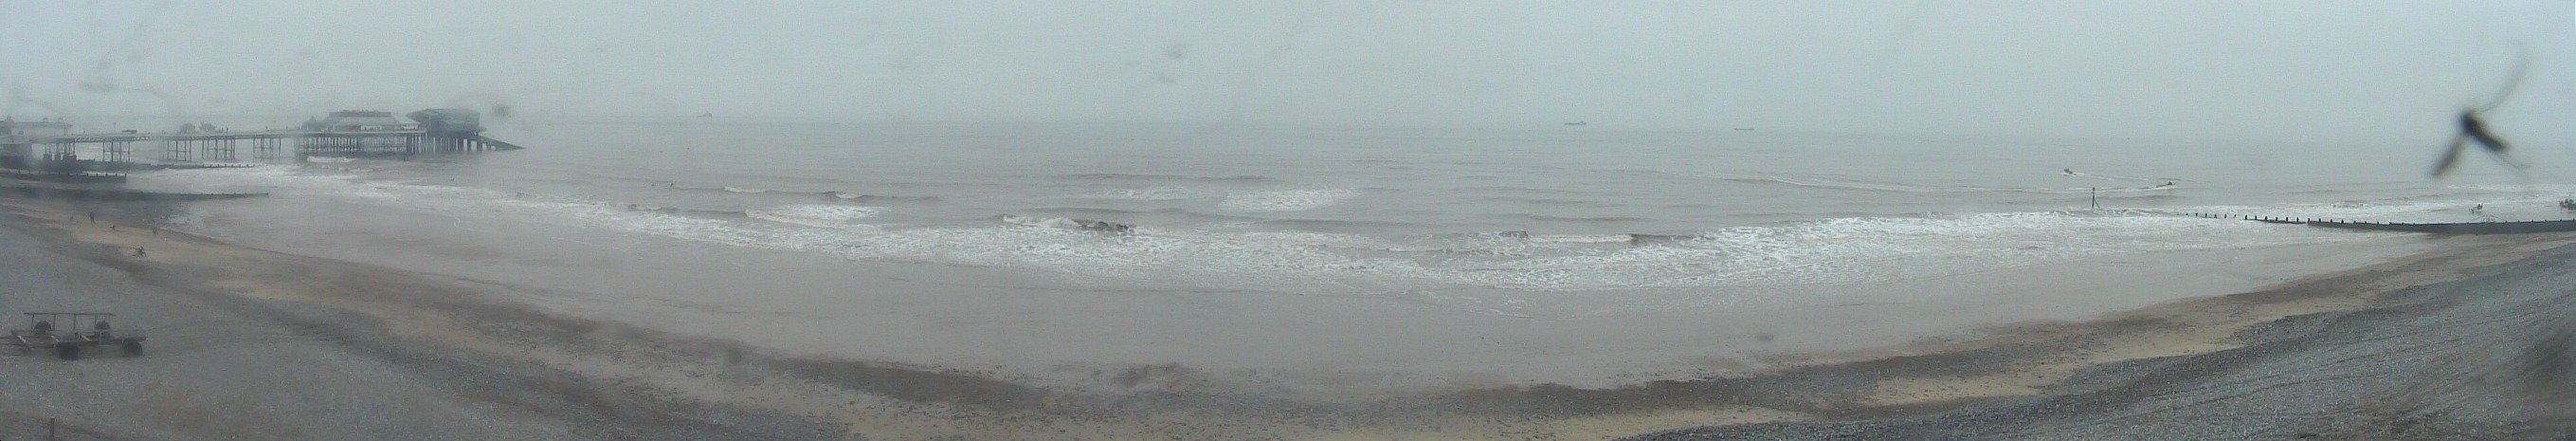 webcam Cromer Norfolk